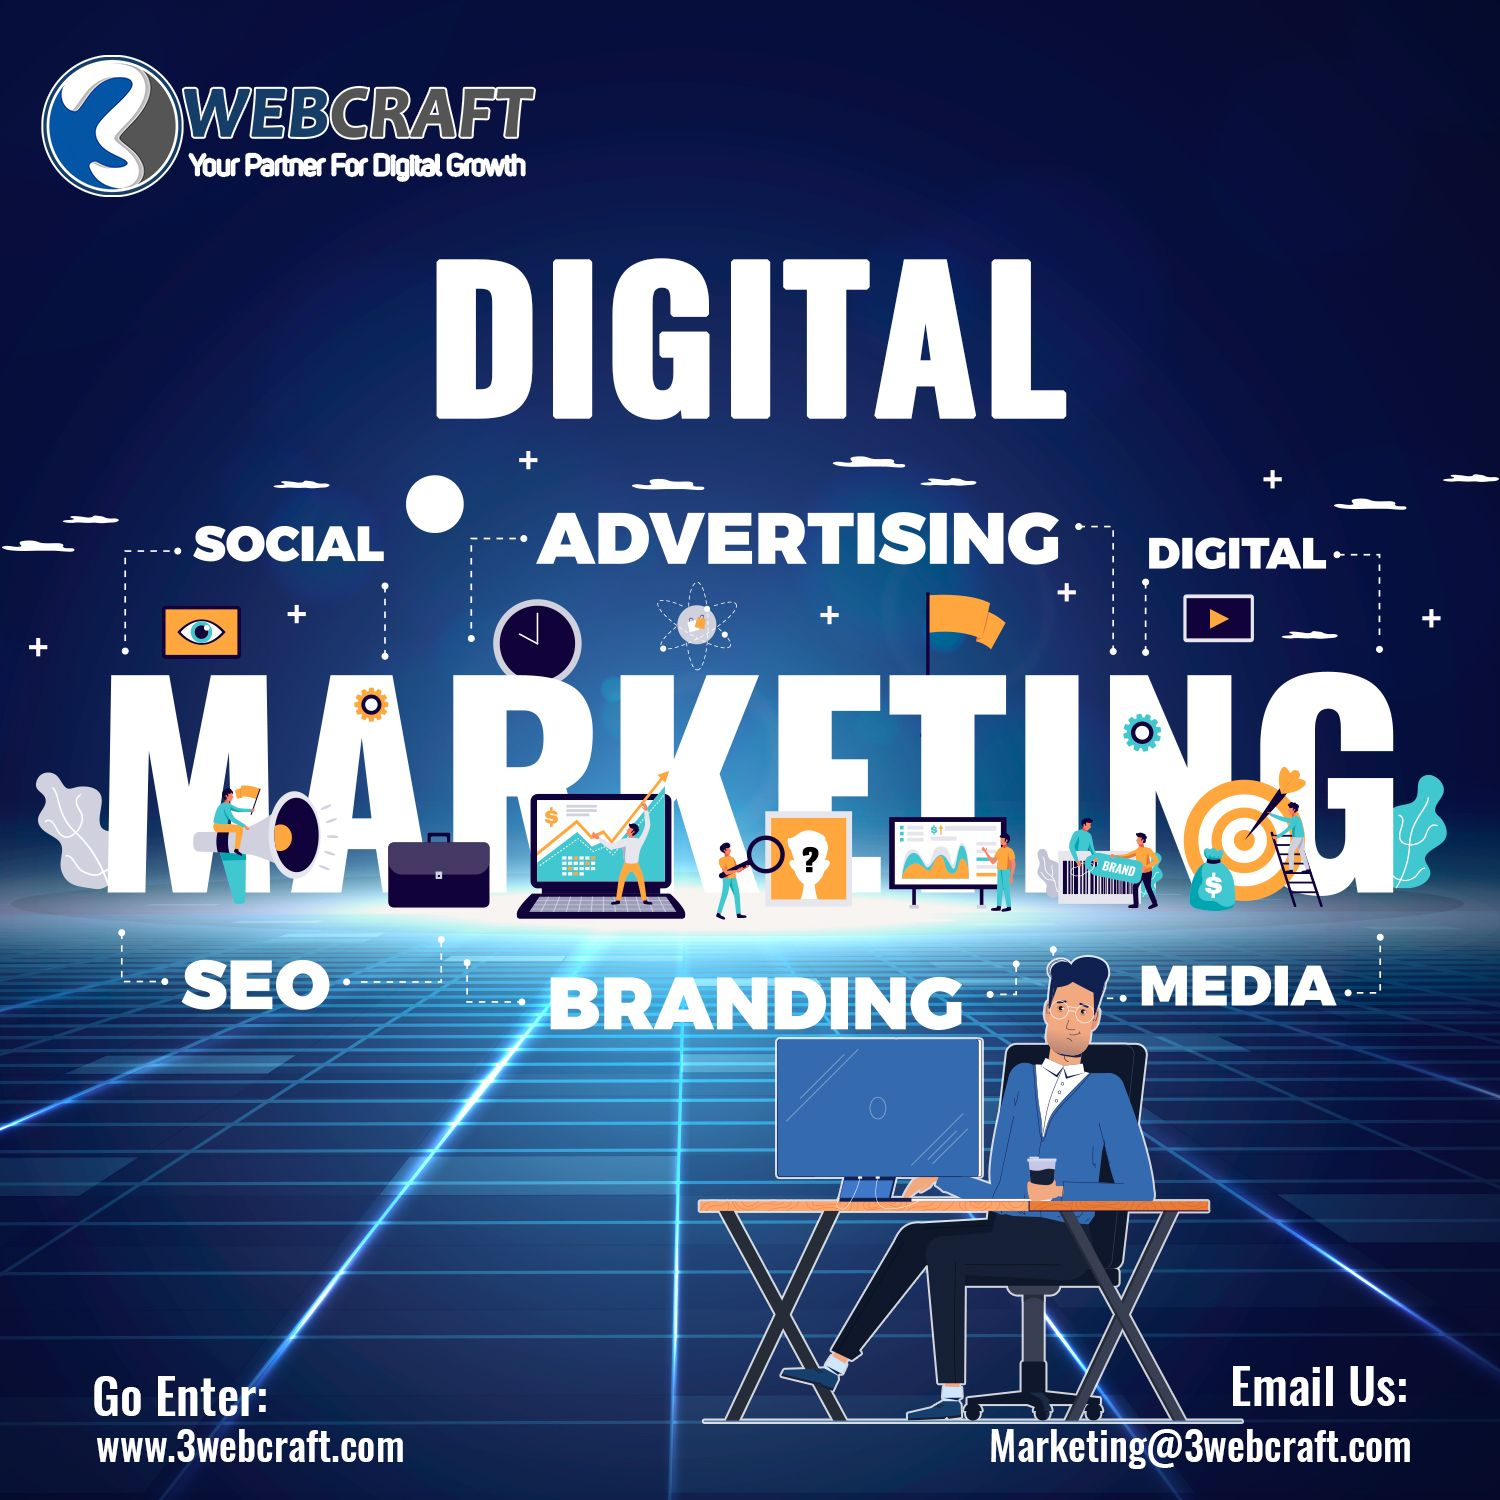 Digital Marketing Services Digital Marketing Services Digital Media Marketing Digital Media Technology